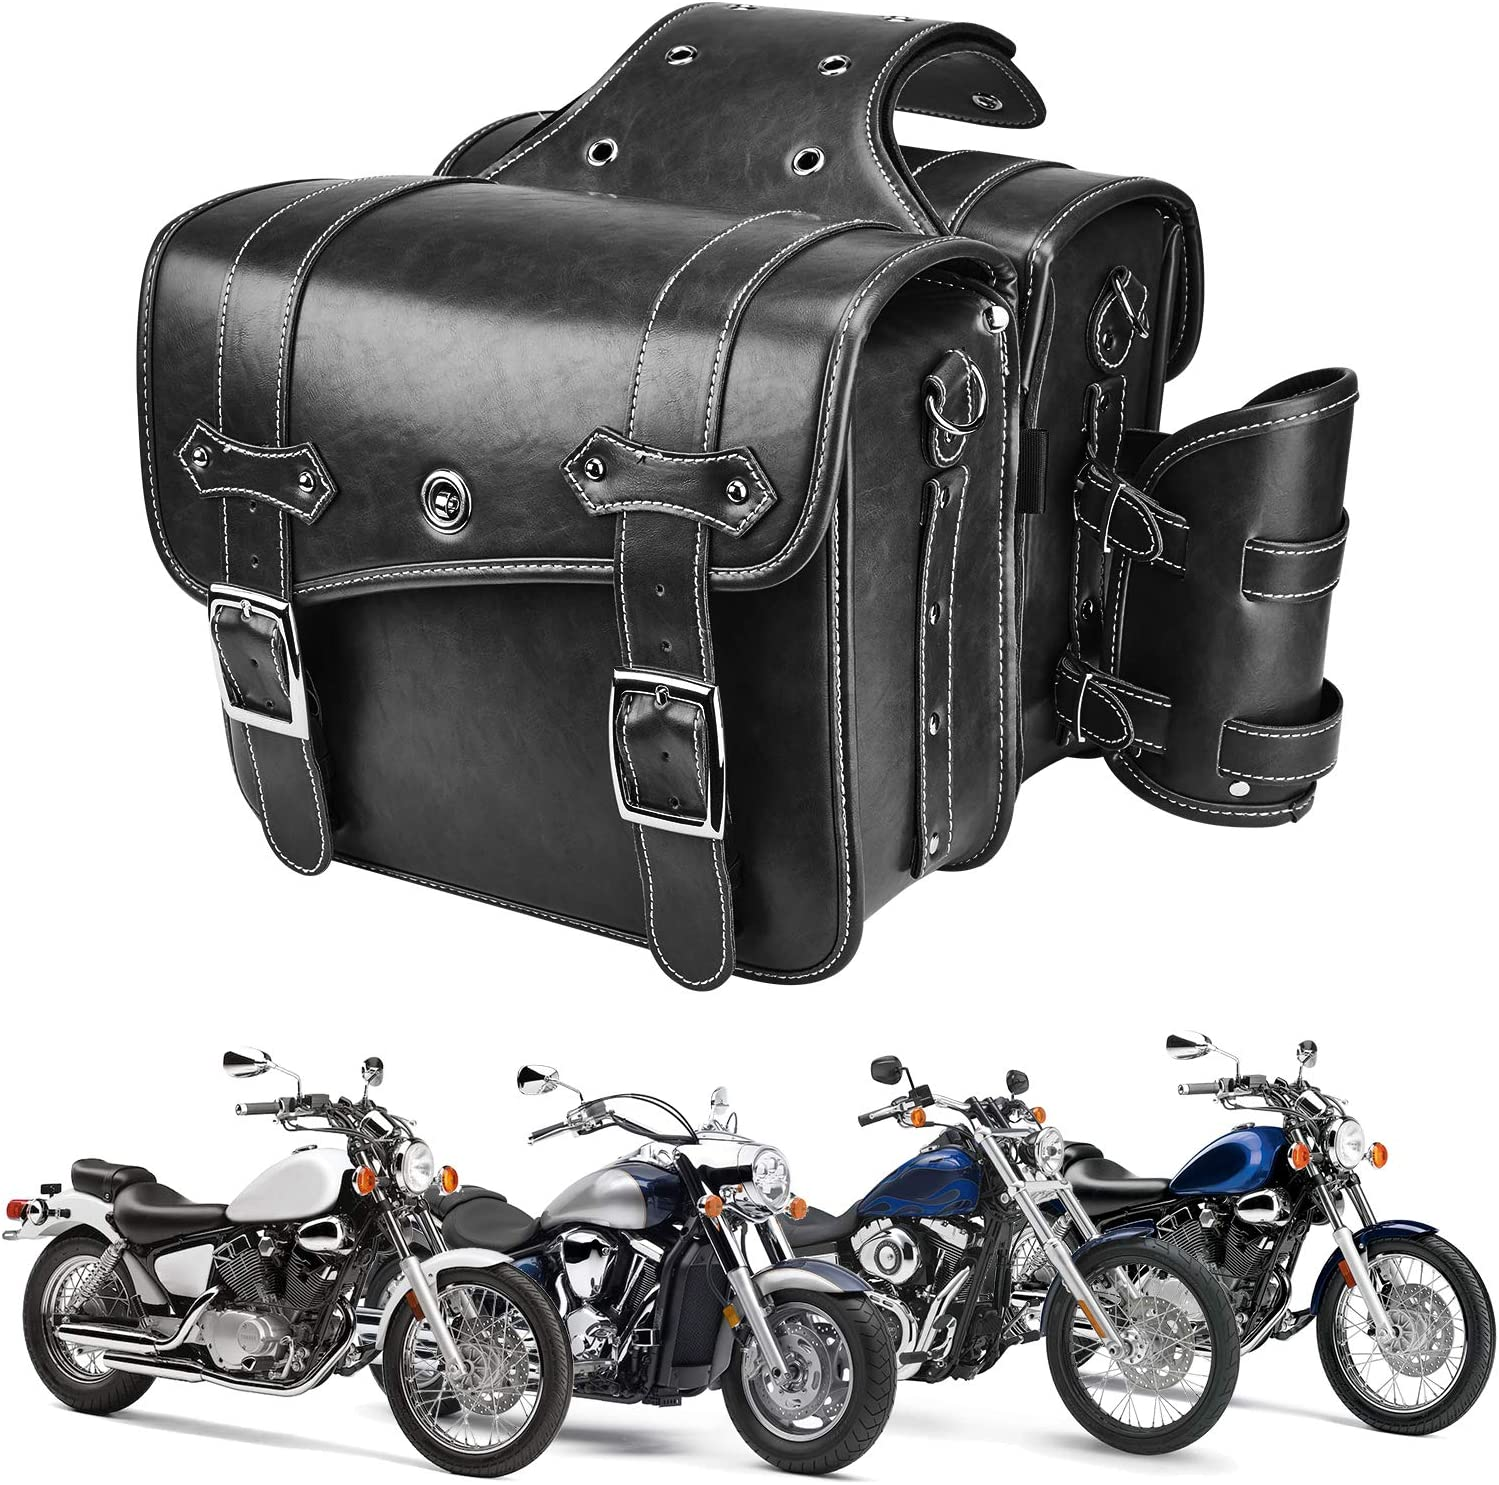 Leather Motorcycles Saddlebag Throw Over Saddle Bag with Cup Pocket for Sportster Softail Dyna Road King V-star Shadow, Vulcan, Black PU Material: Automotive